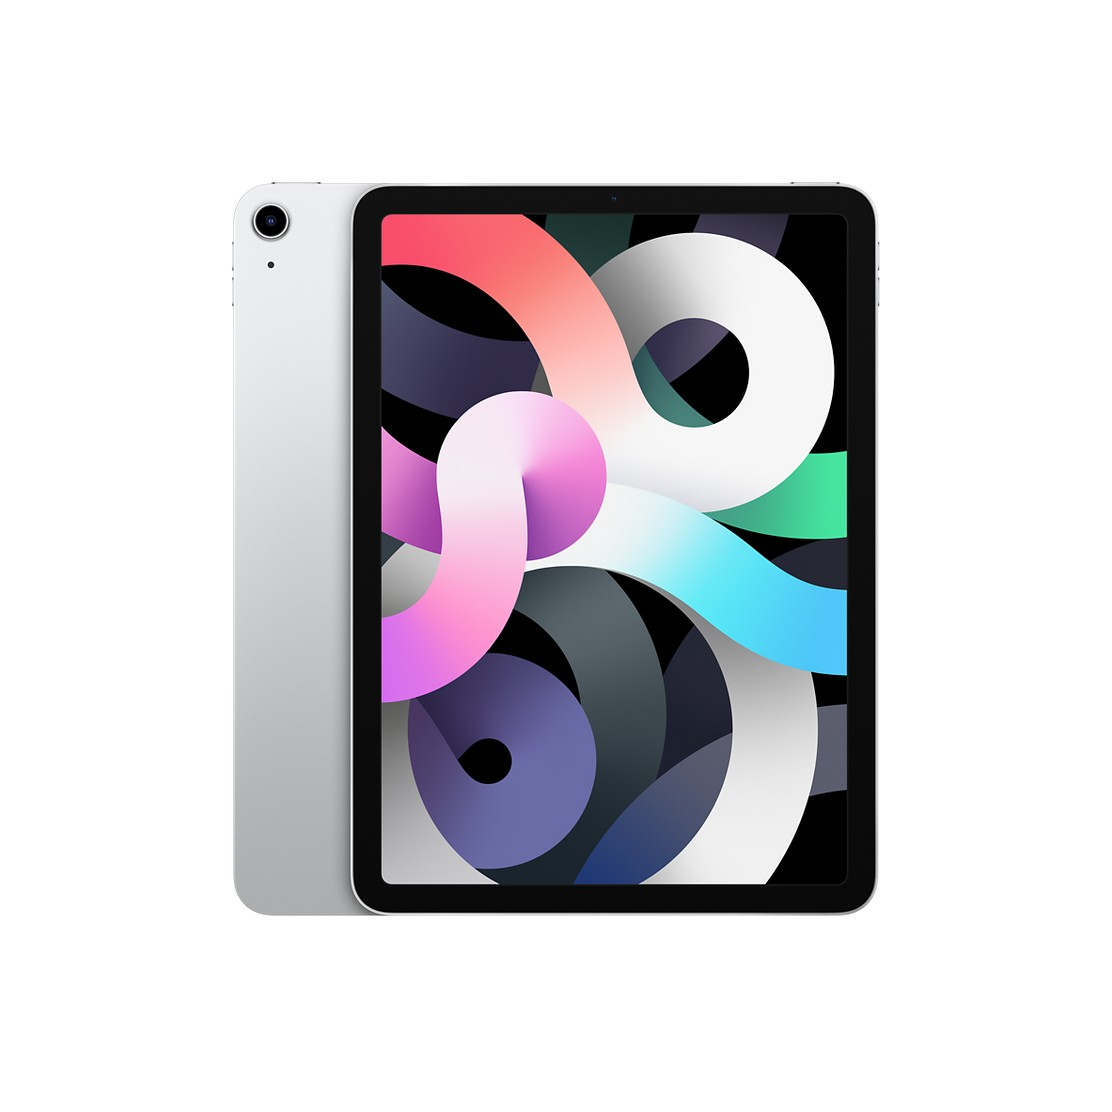 Apple iPad Air 2020 4th generation A14 64GB Wi-Fi with Screen Protector and Folding Case (Black) - Silver